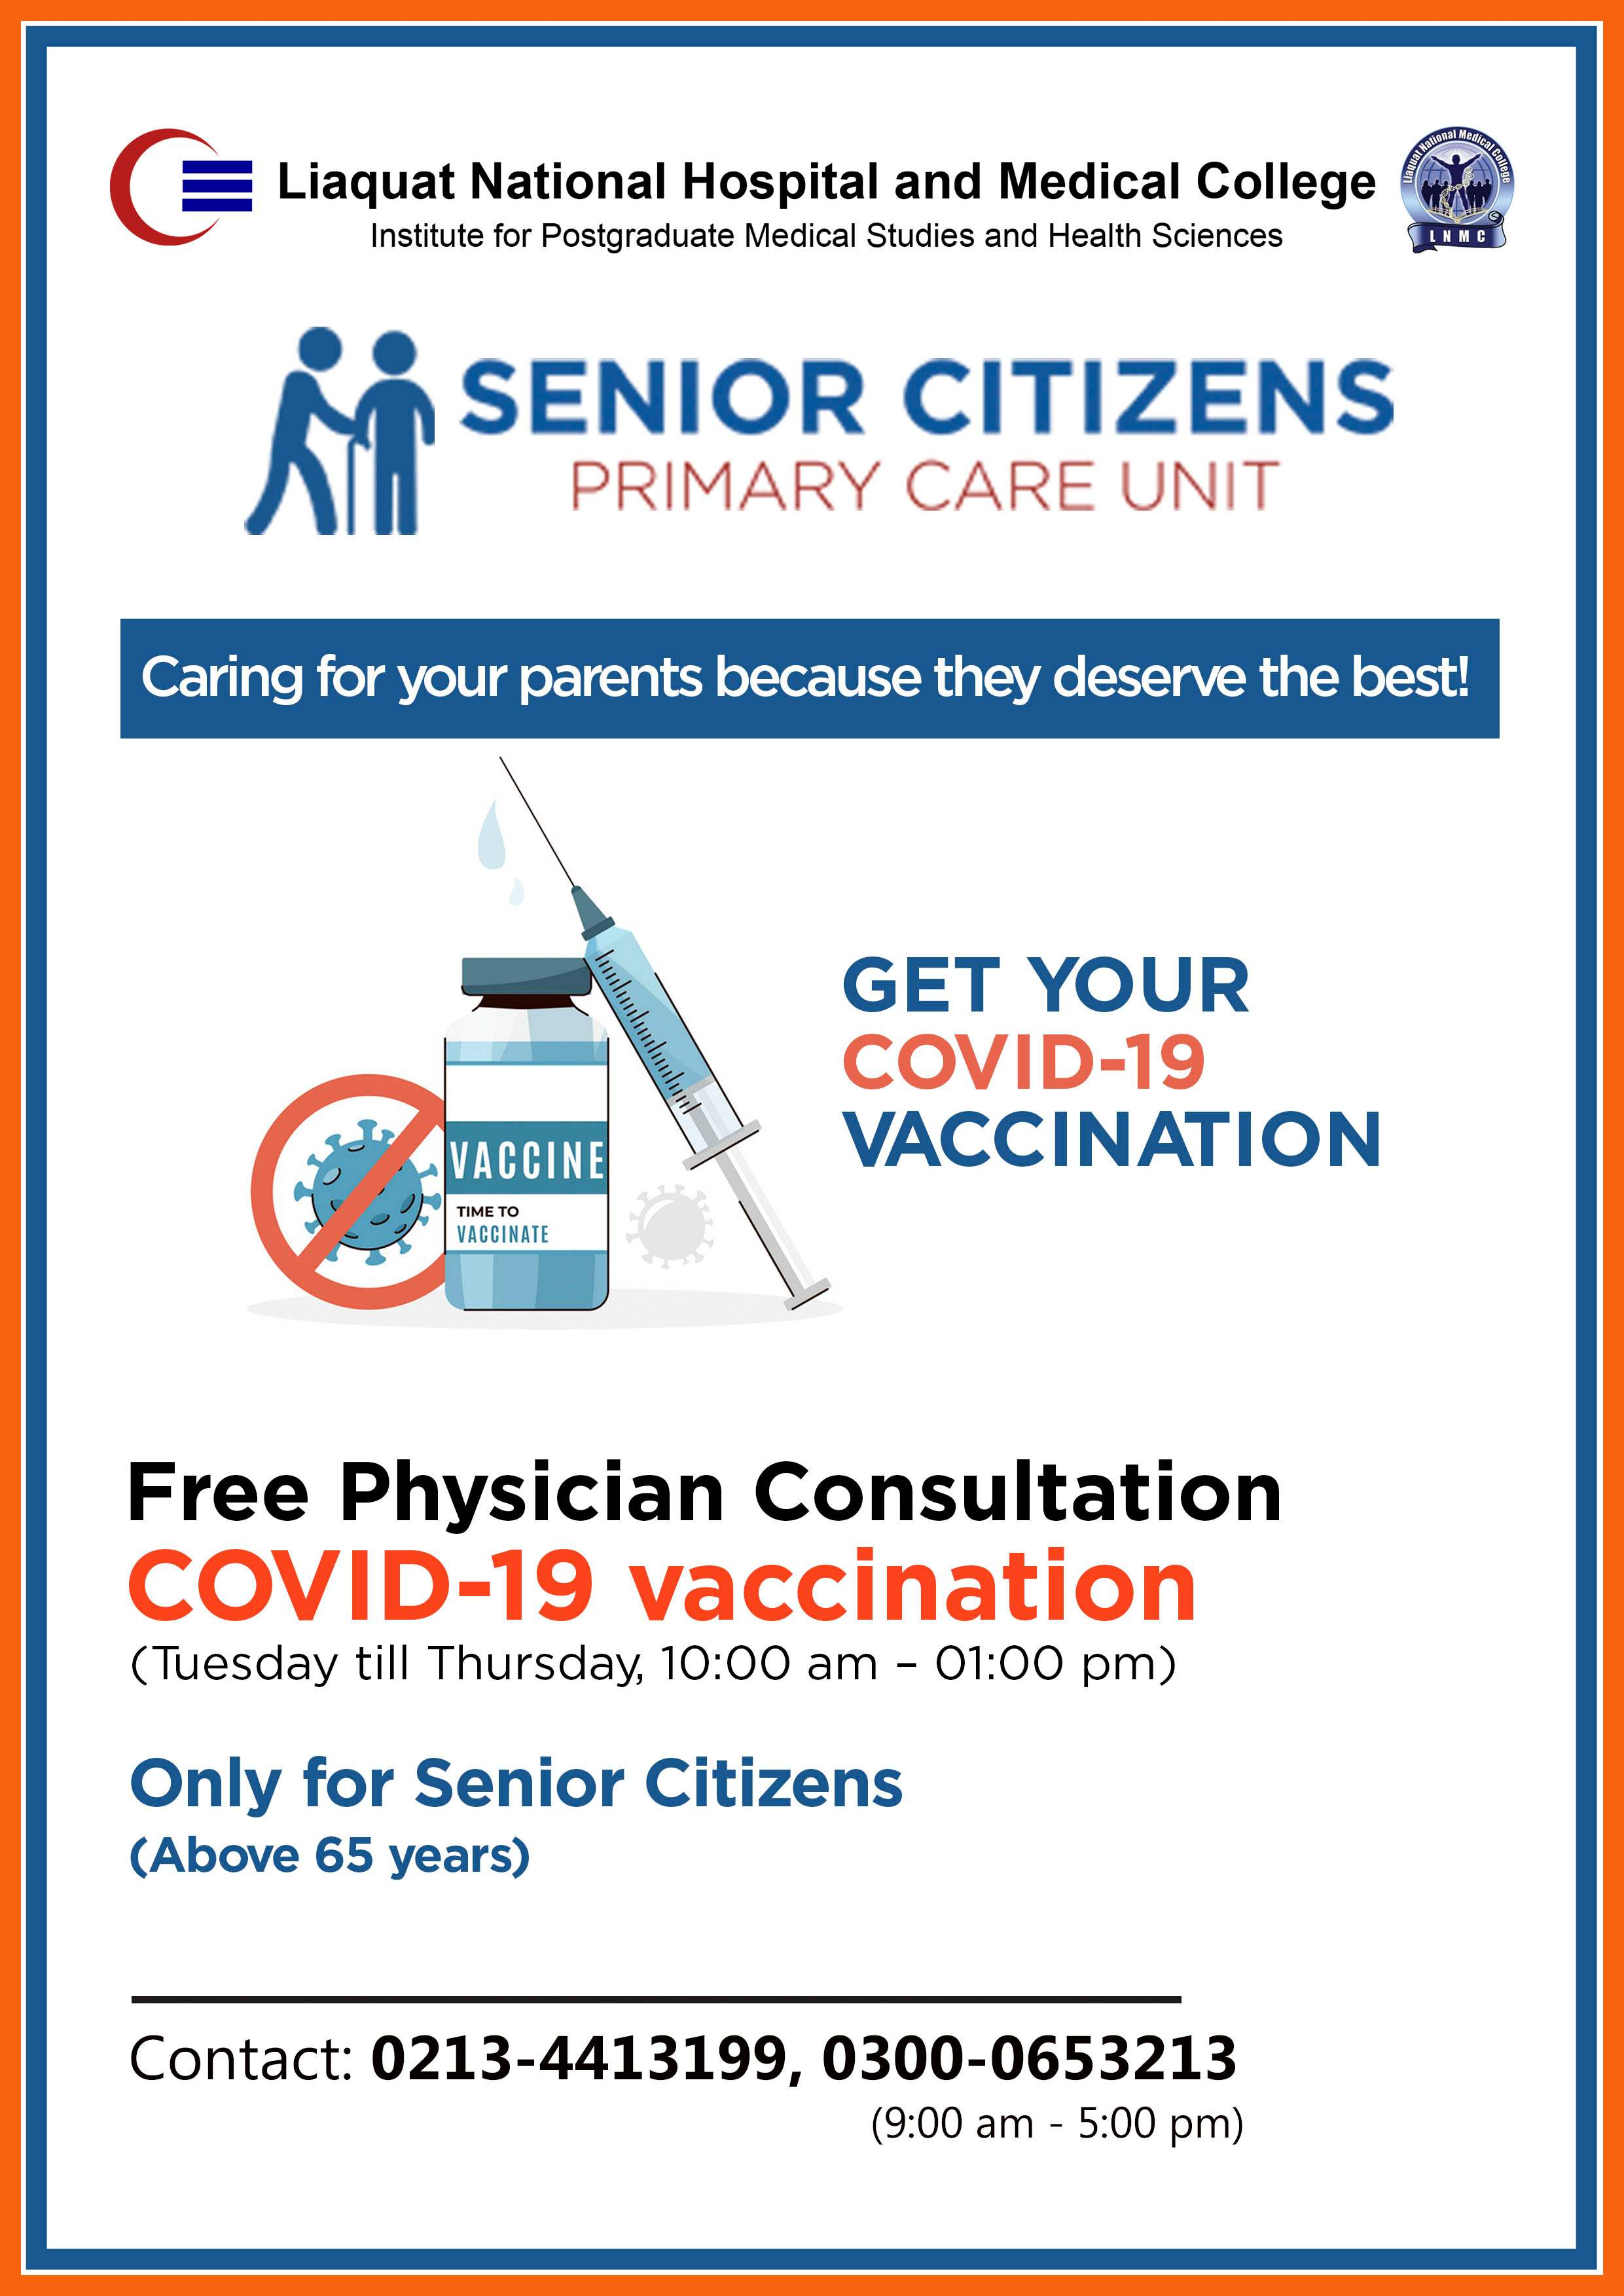 Free Consultation on COVID-19 Vaccination (Only for Senior Citizens)